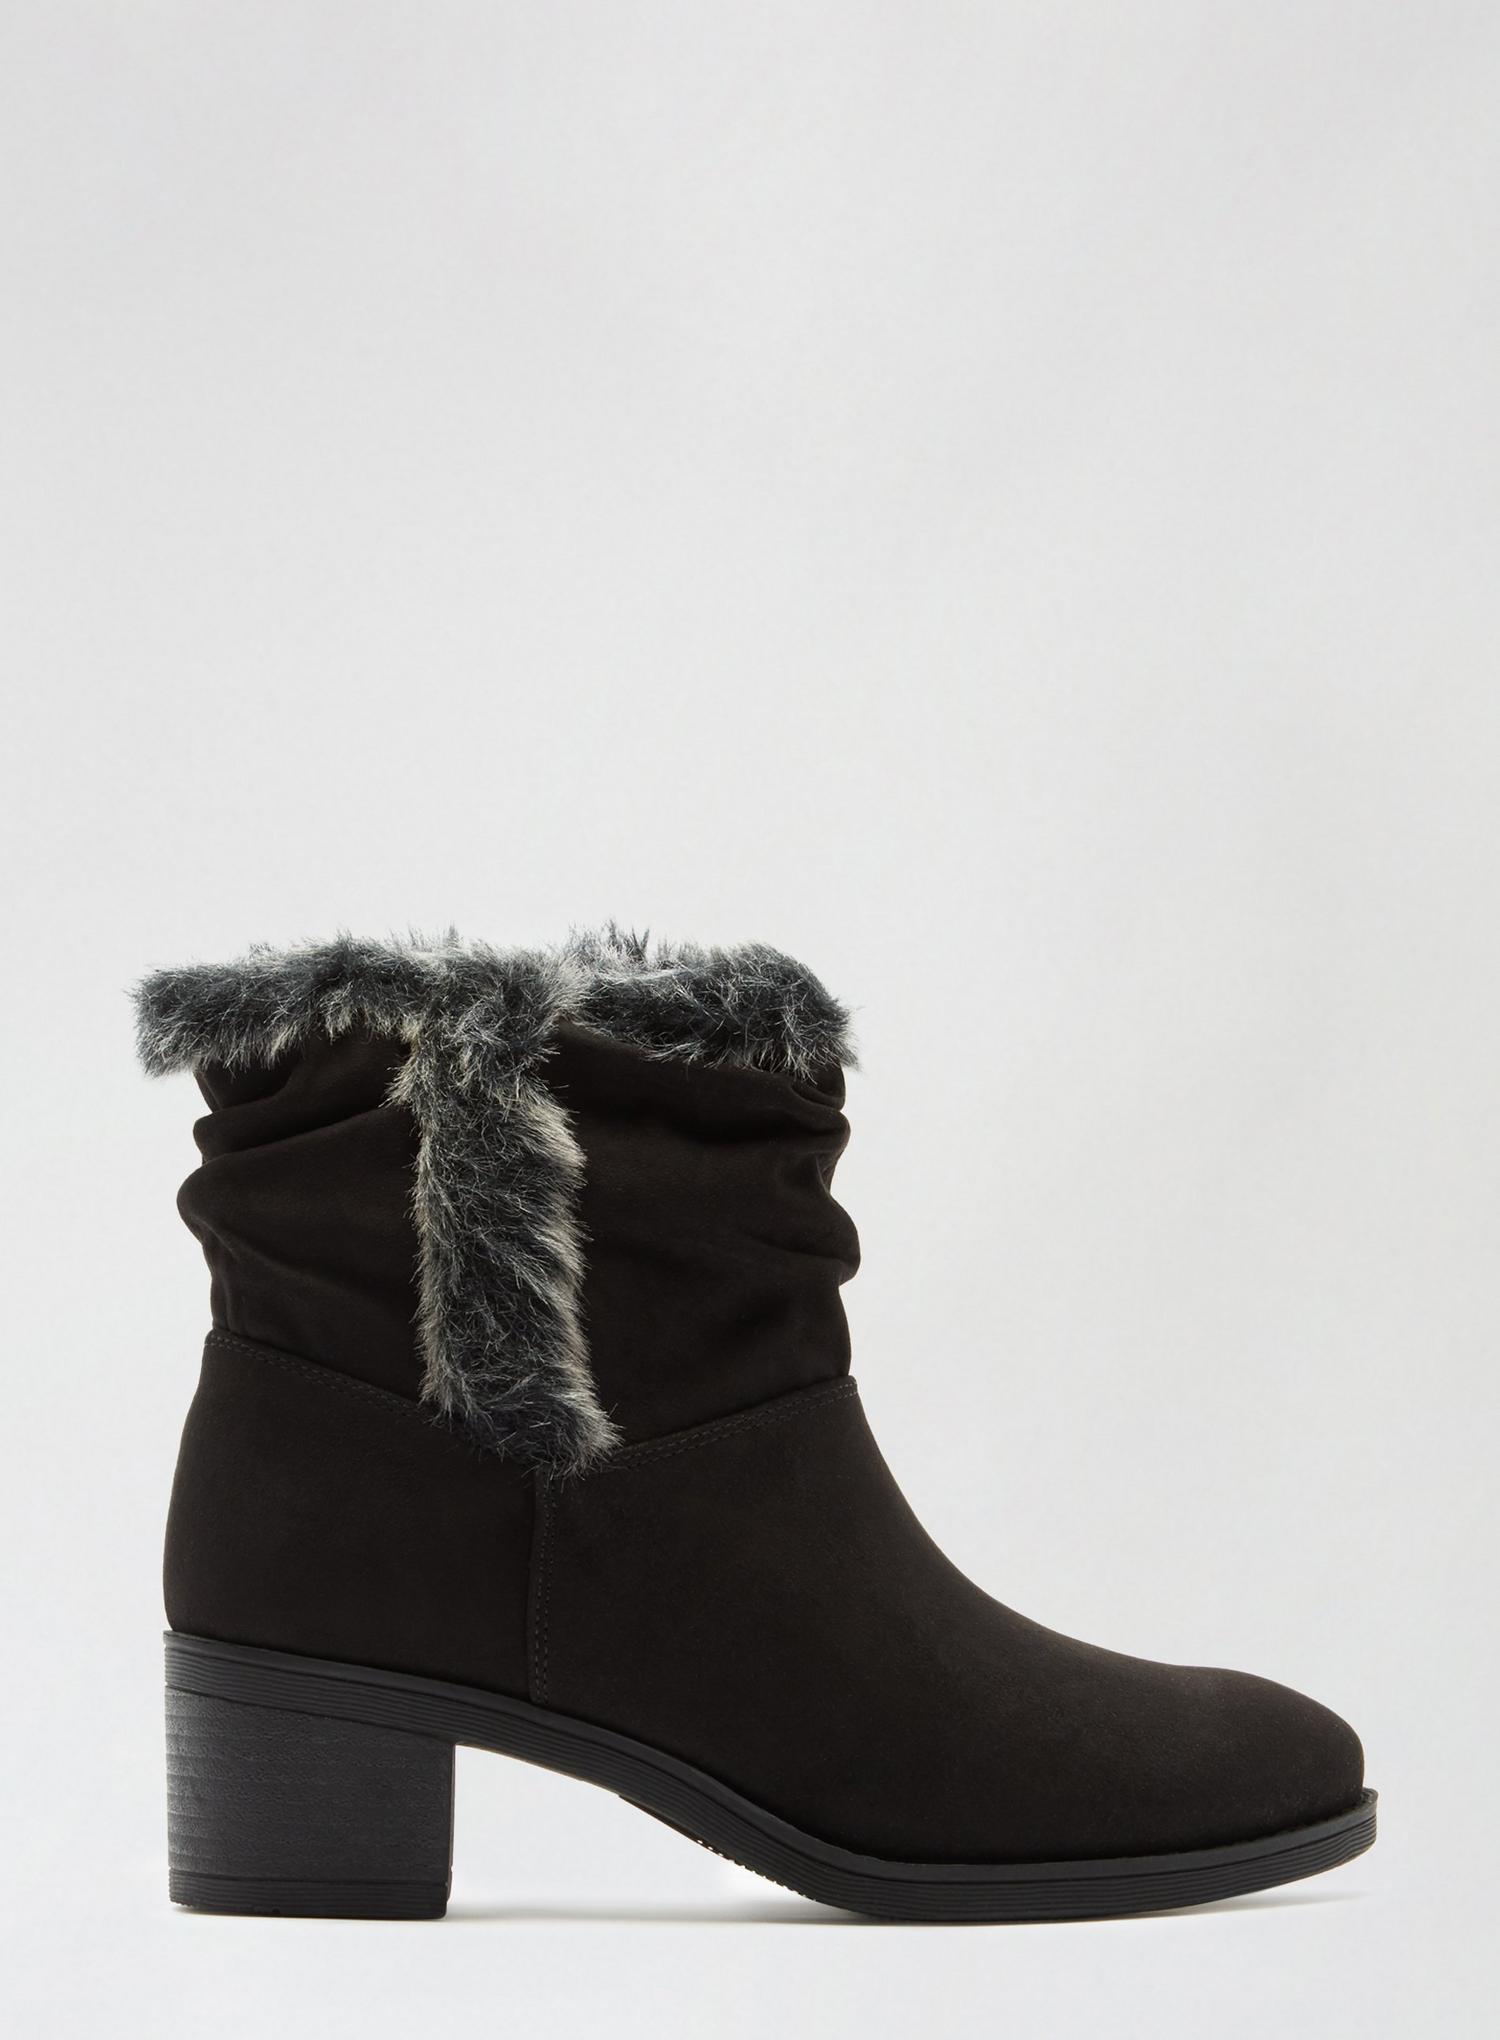 105 Black Madrid Rouched Boots image number 2